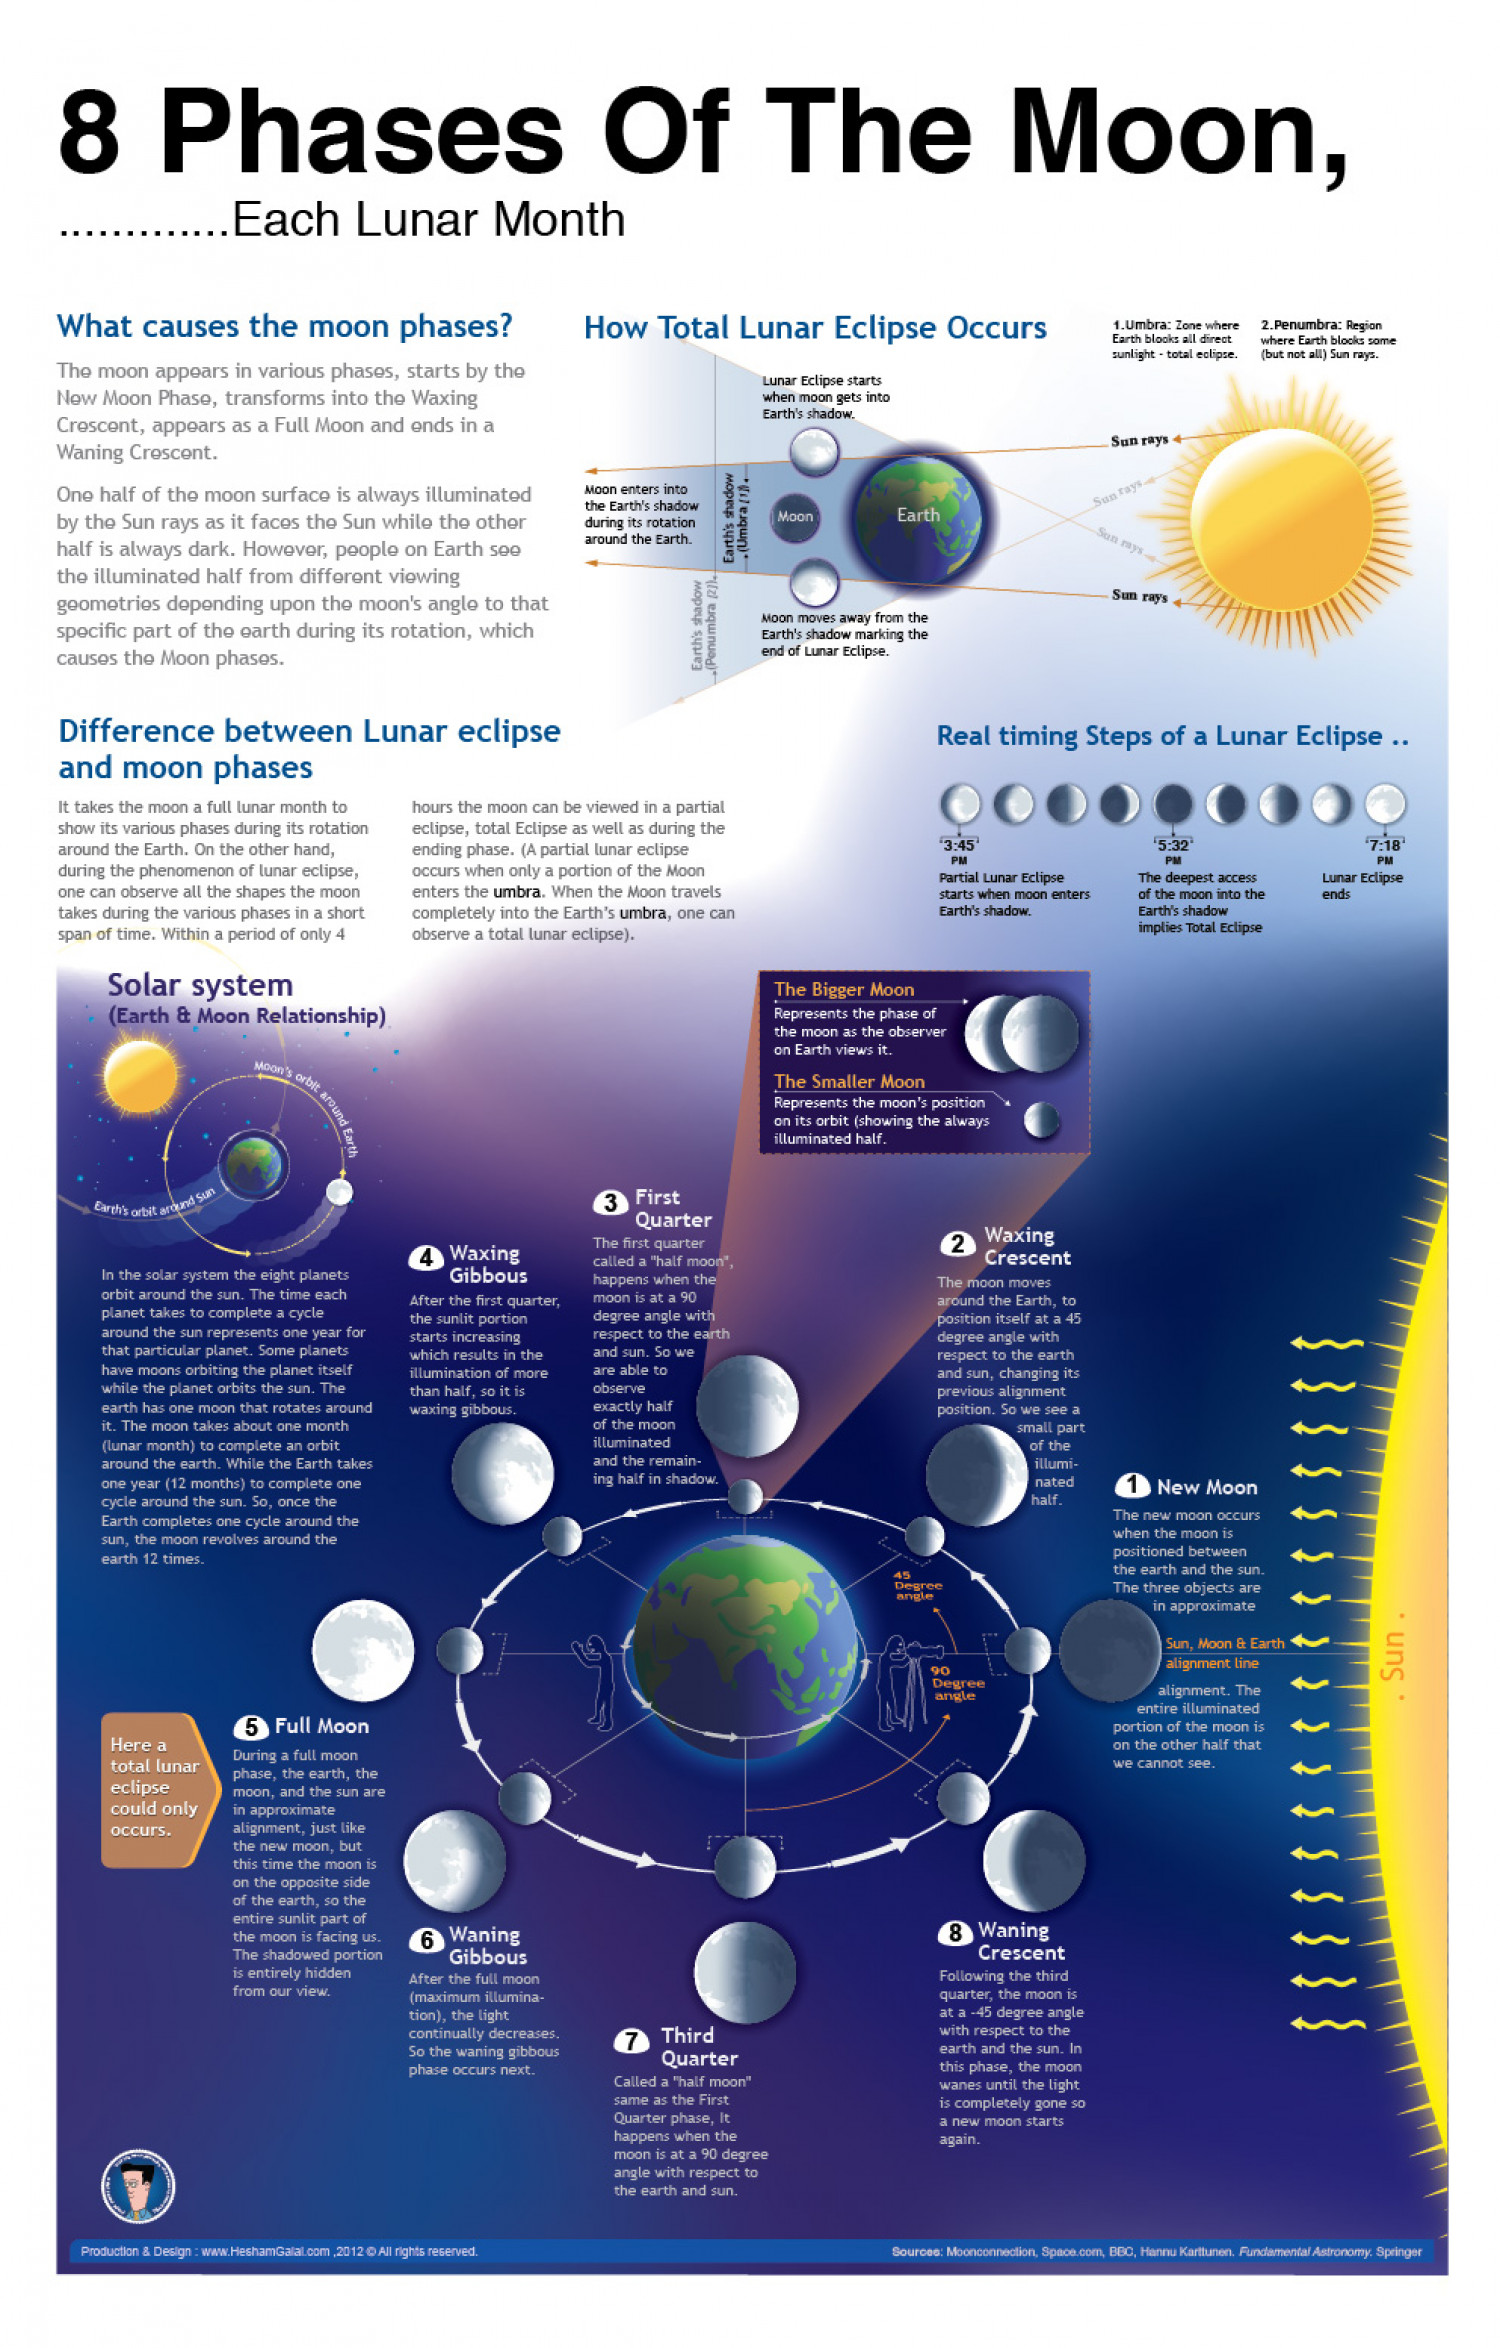 8 Phases Of The Moon 0.2 Infographic